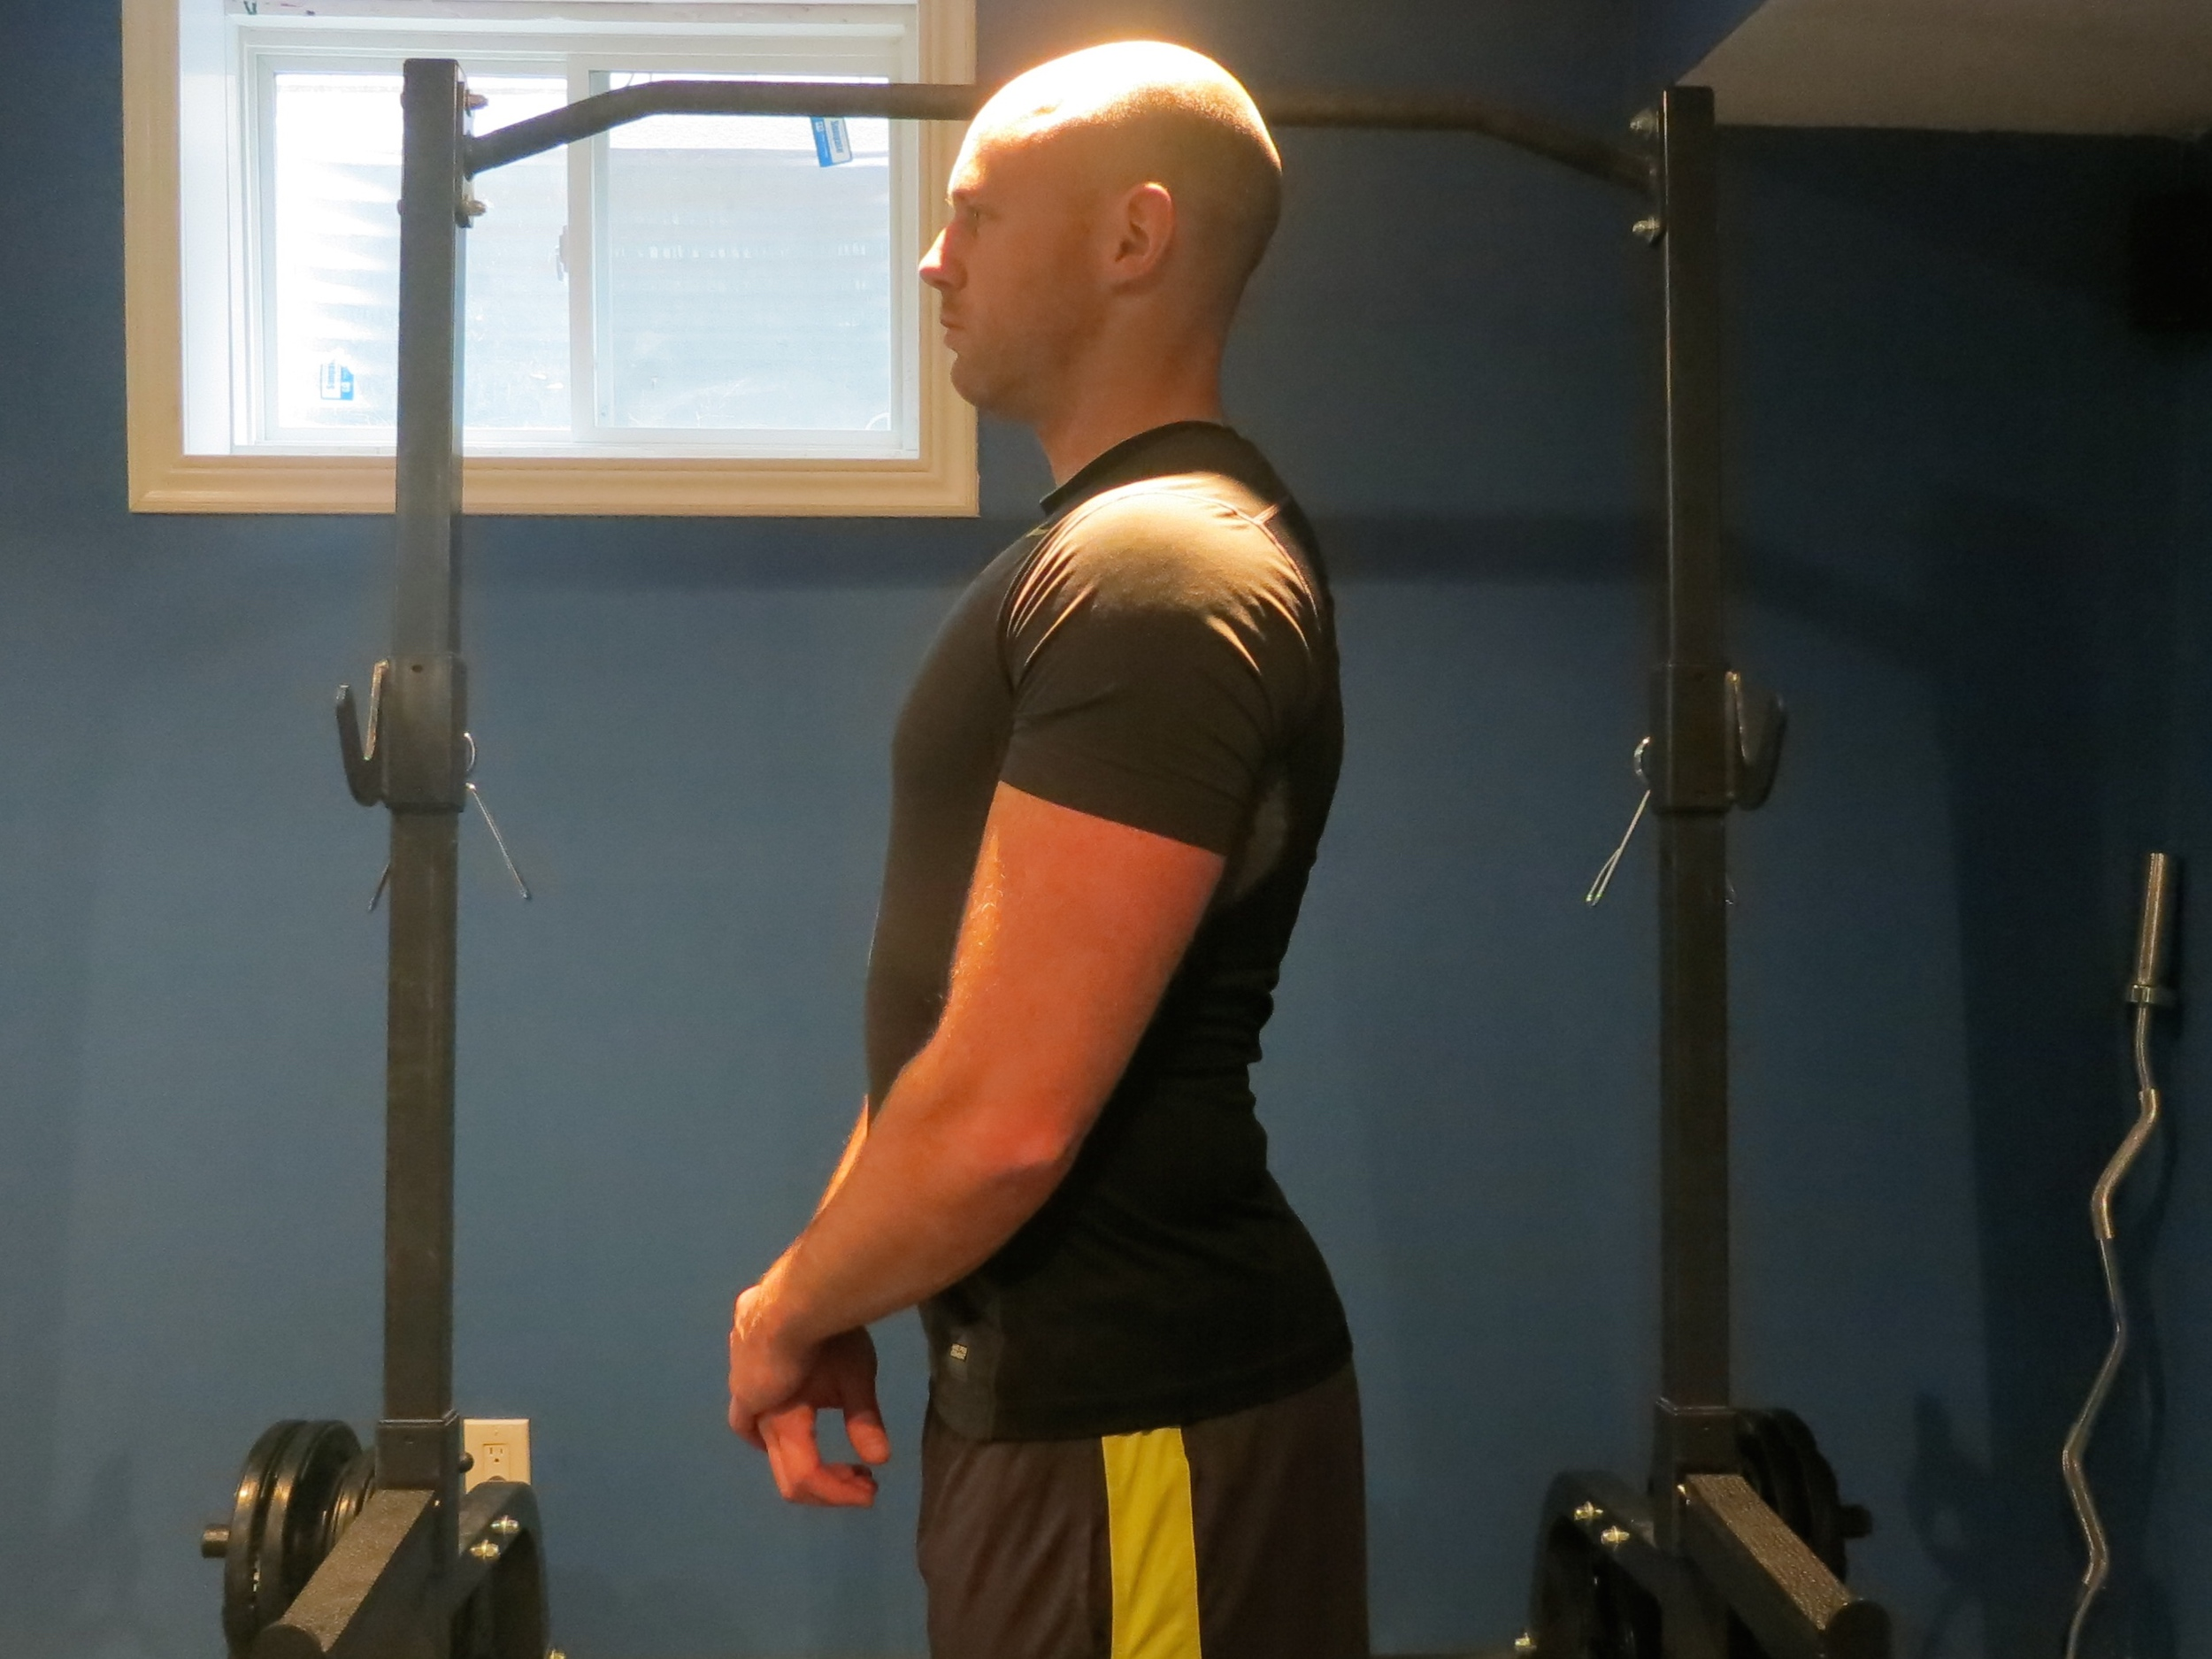 """Head remains up throughout, gaze slightly above parallel. Back is """"flat,"""" maintaining the natural S-curve with arch in the lumbar region. Core and abs are tight."""